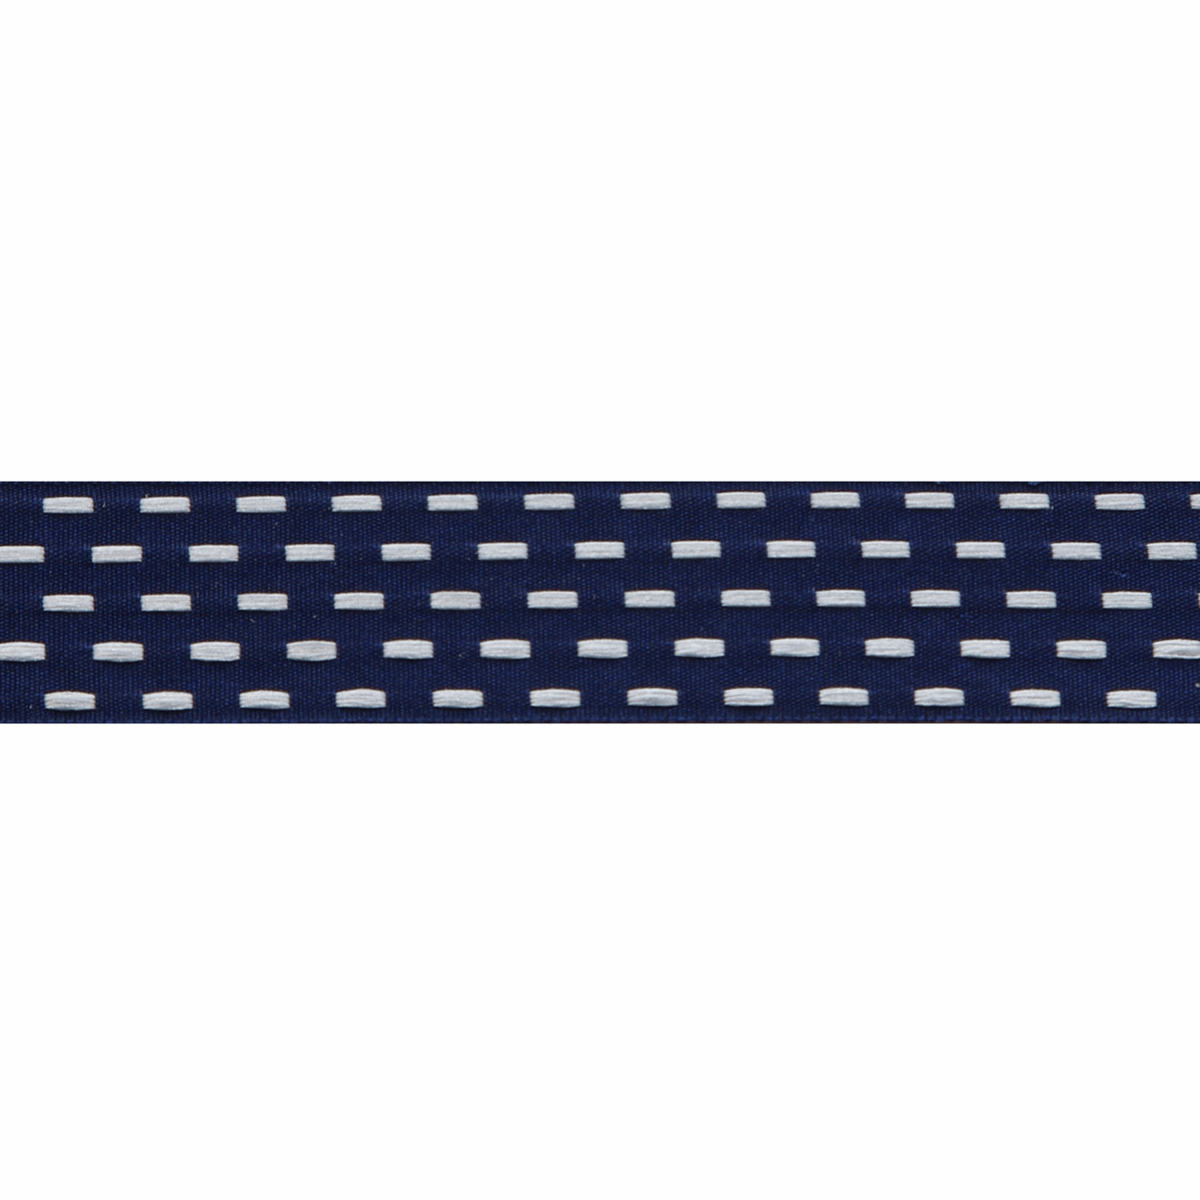 Berisfords Parallel Stitch Ribbon - 25mm Wide - Navy / White